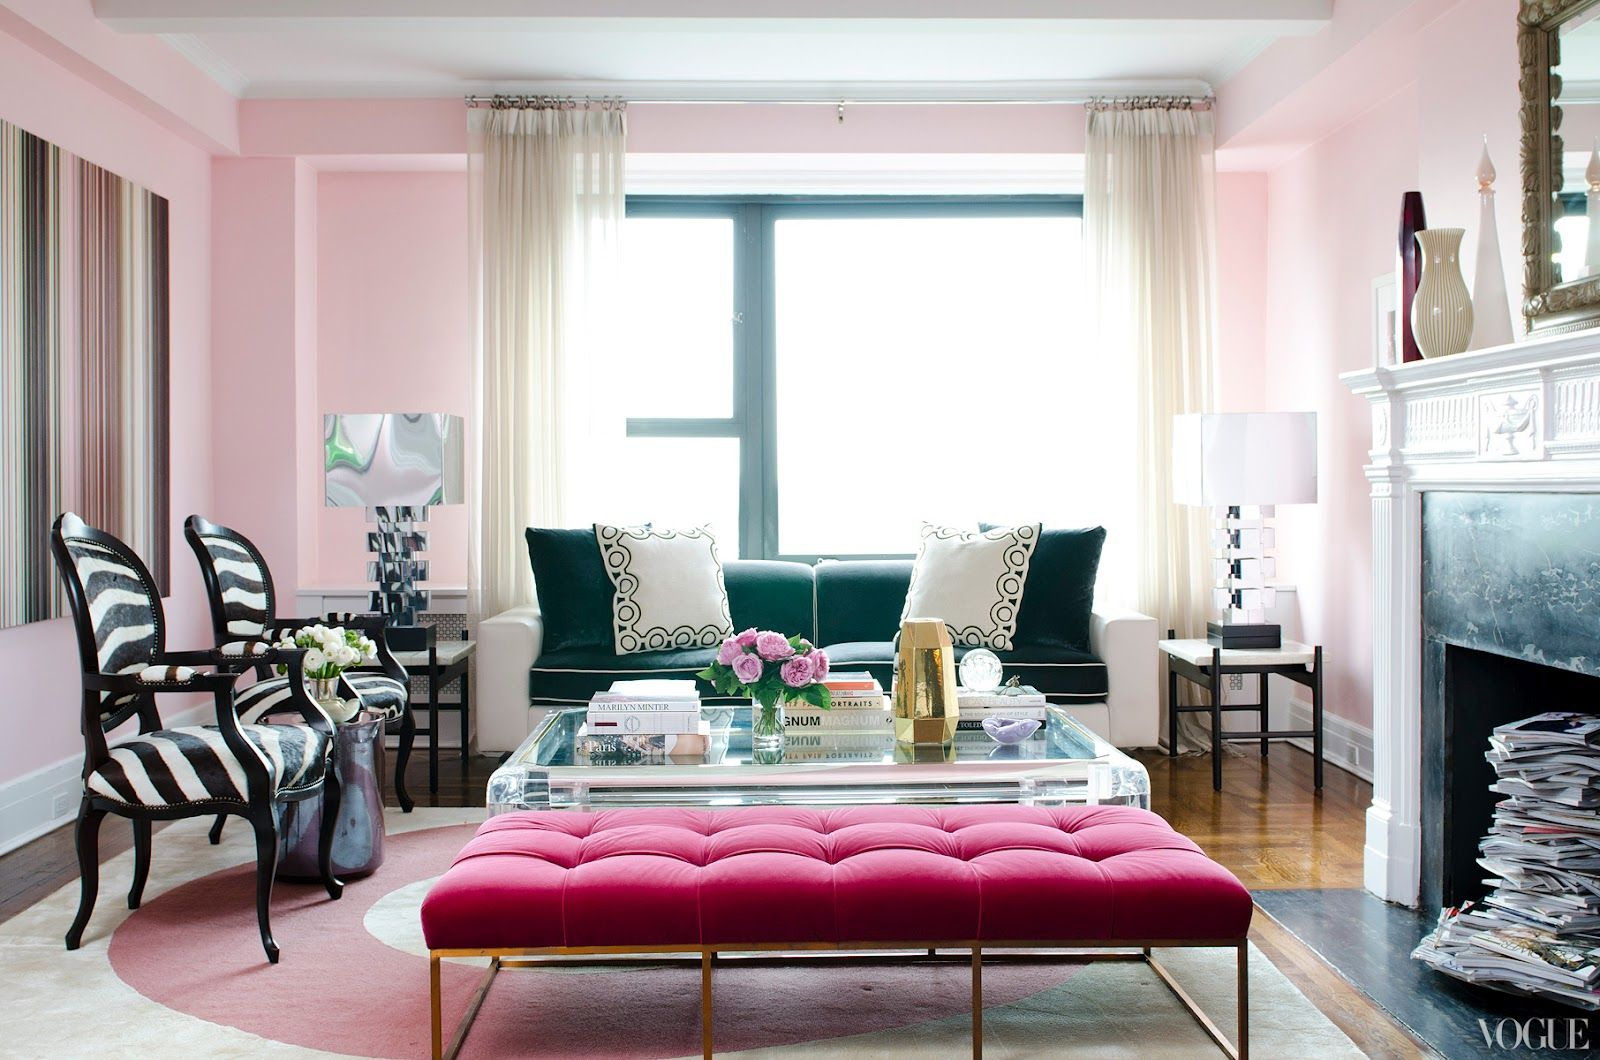 Bibi Monnahann | Condo Themes | Pinterest | Living rooms, Bench and Room